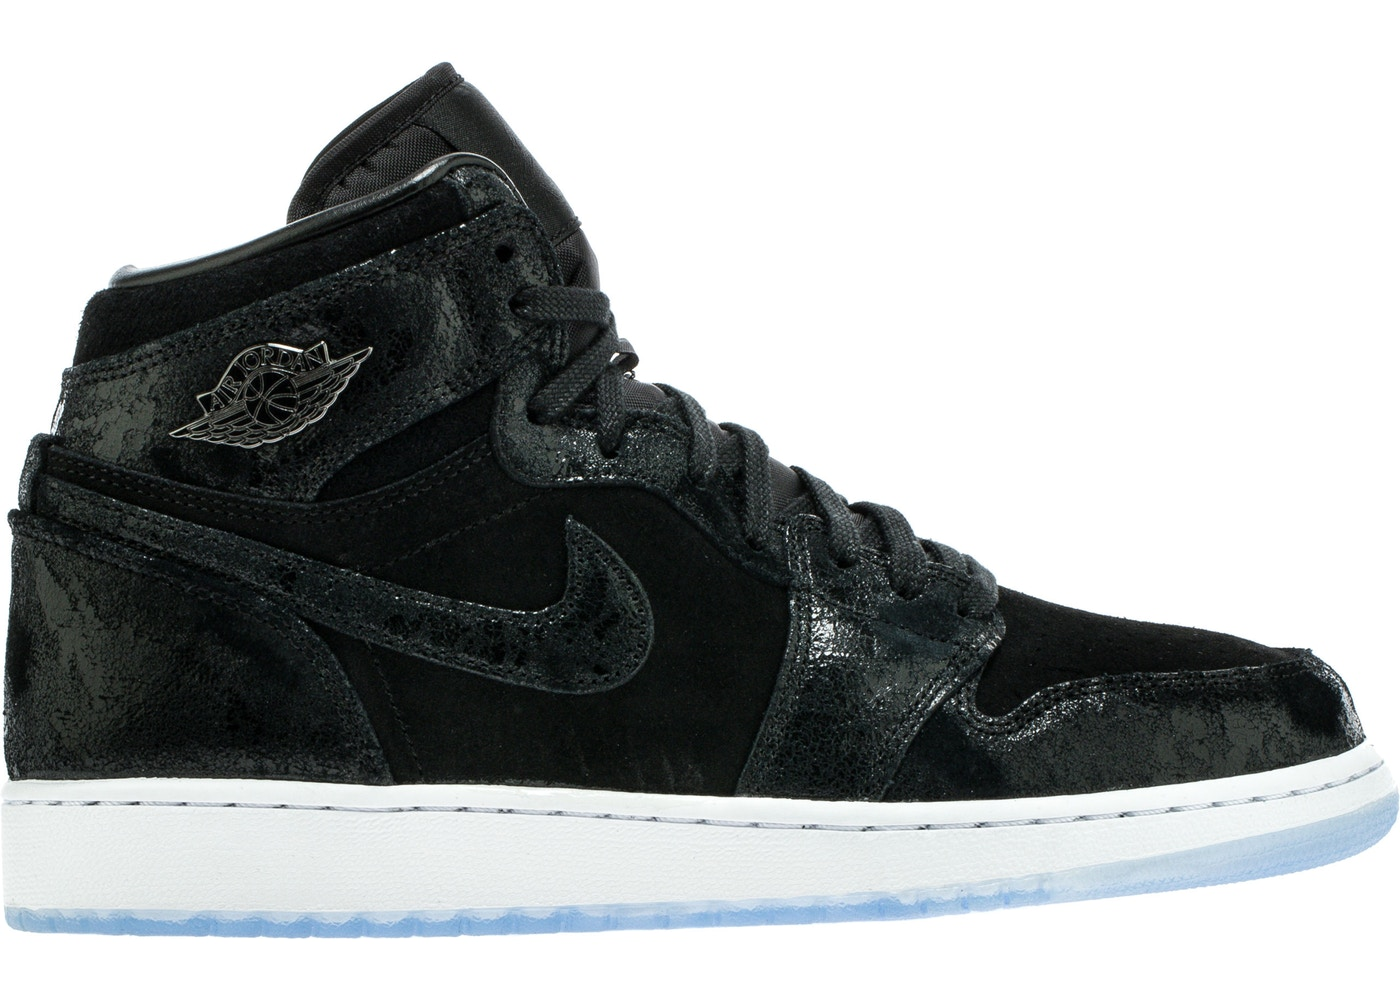 91d76ac0a02e1 Sell. or Ask. Size: 7Y. View All Bids. Jordan 1 Retro High Heiress Black  Suede (GS)